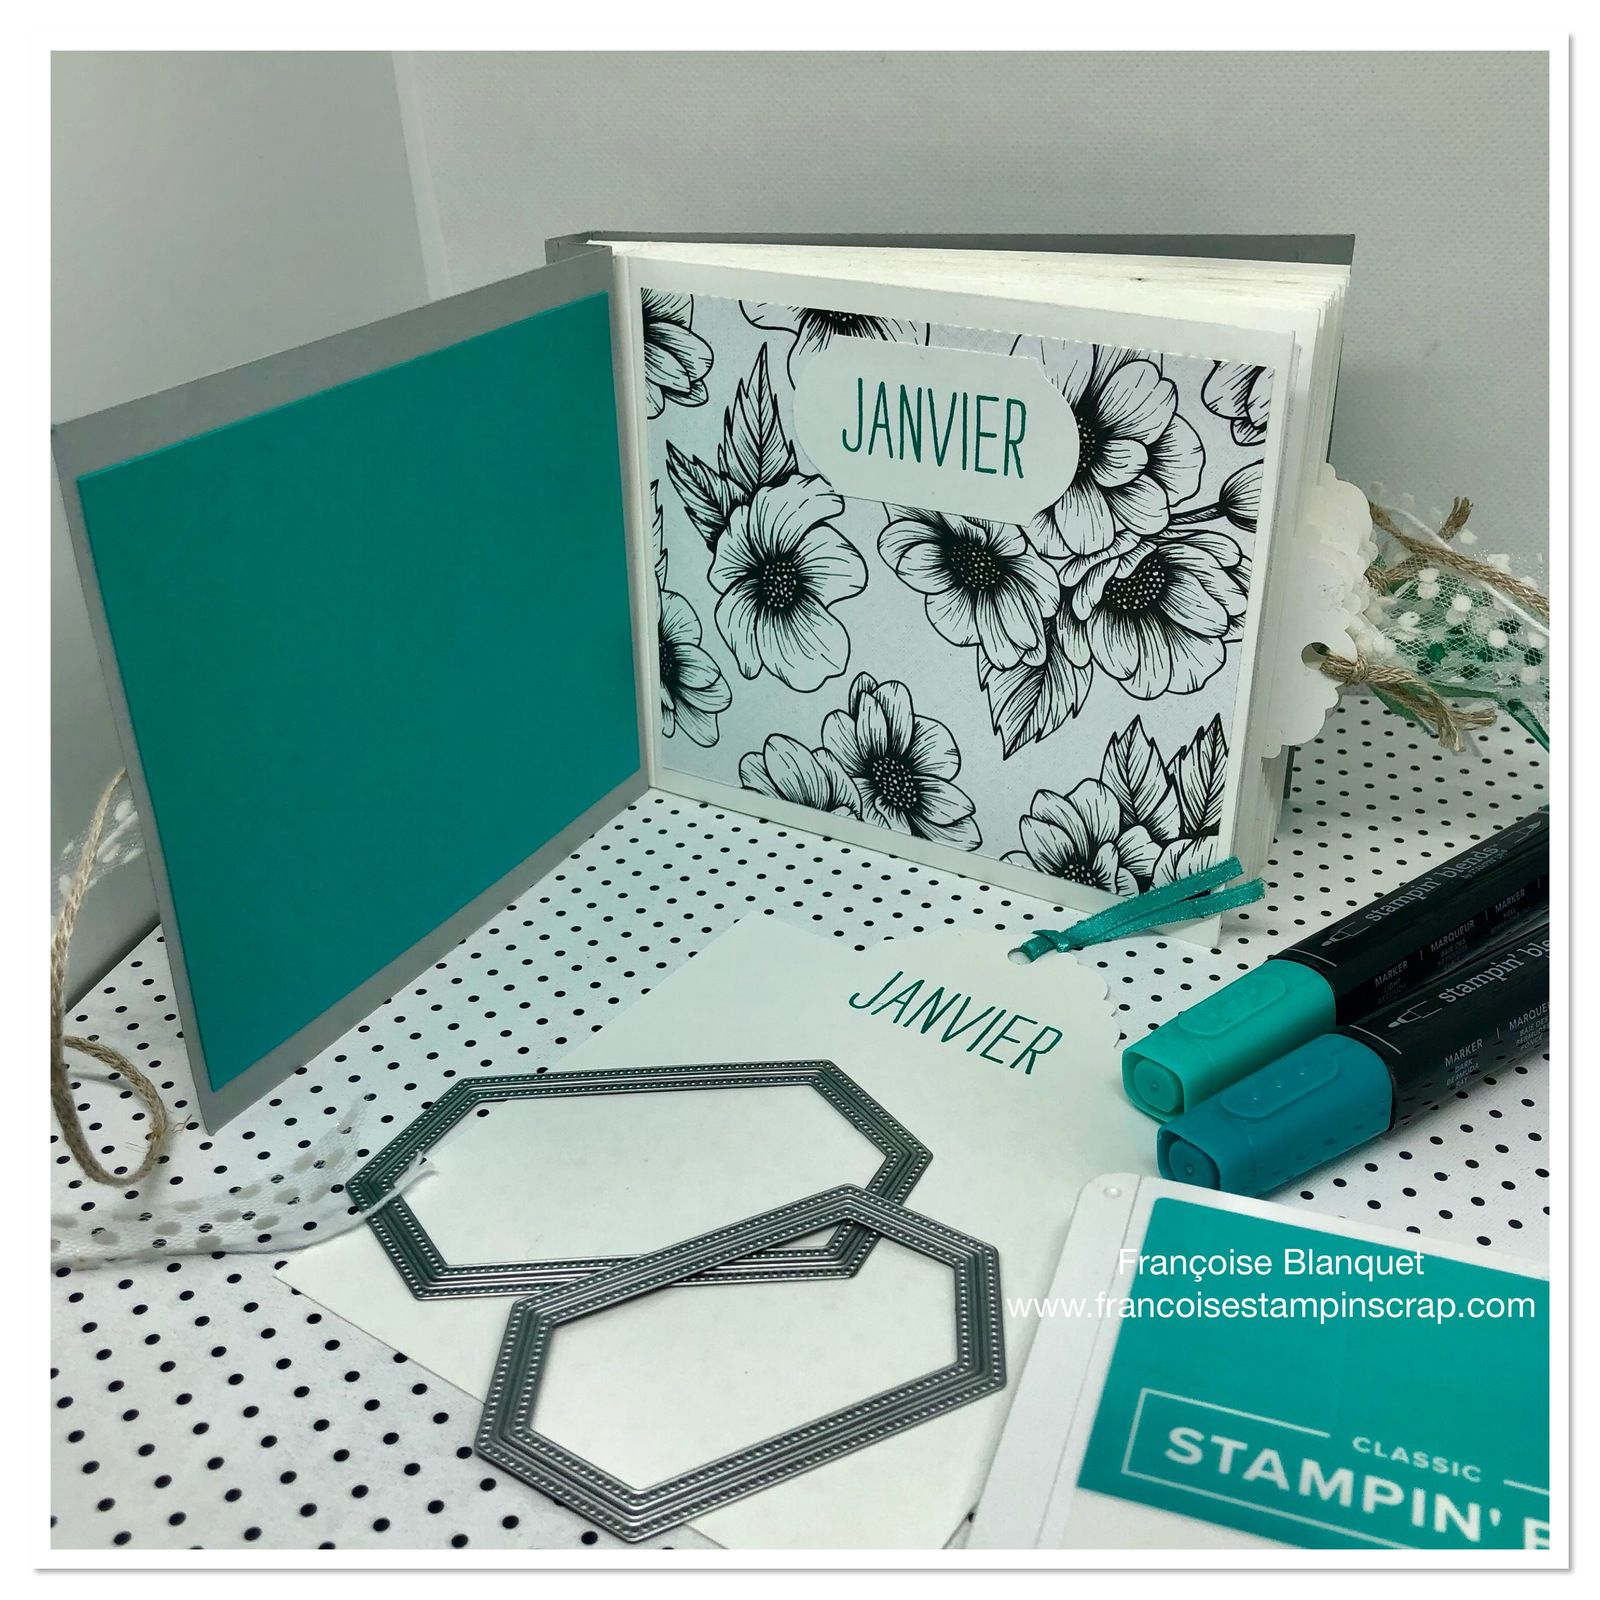 Liens vers boutique Stampin'Up!  http://www.stampinup.fr?demoid=5016995